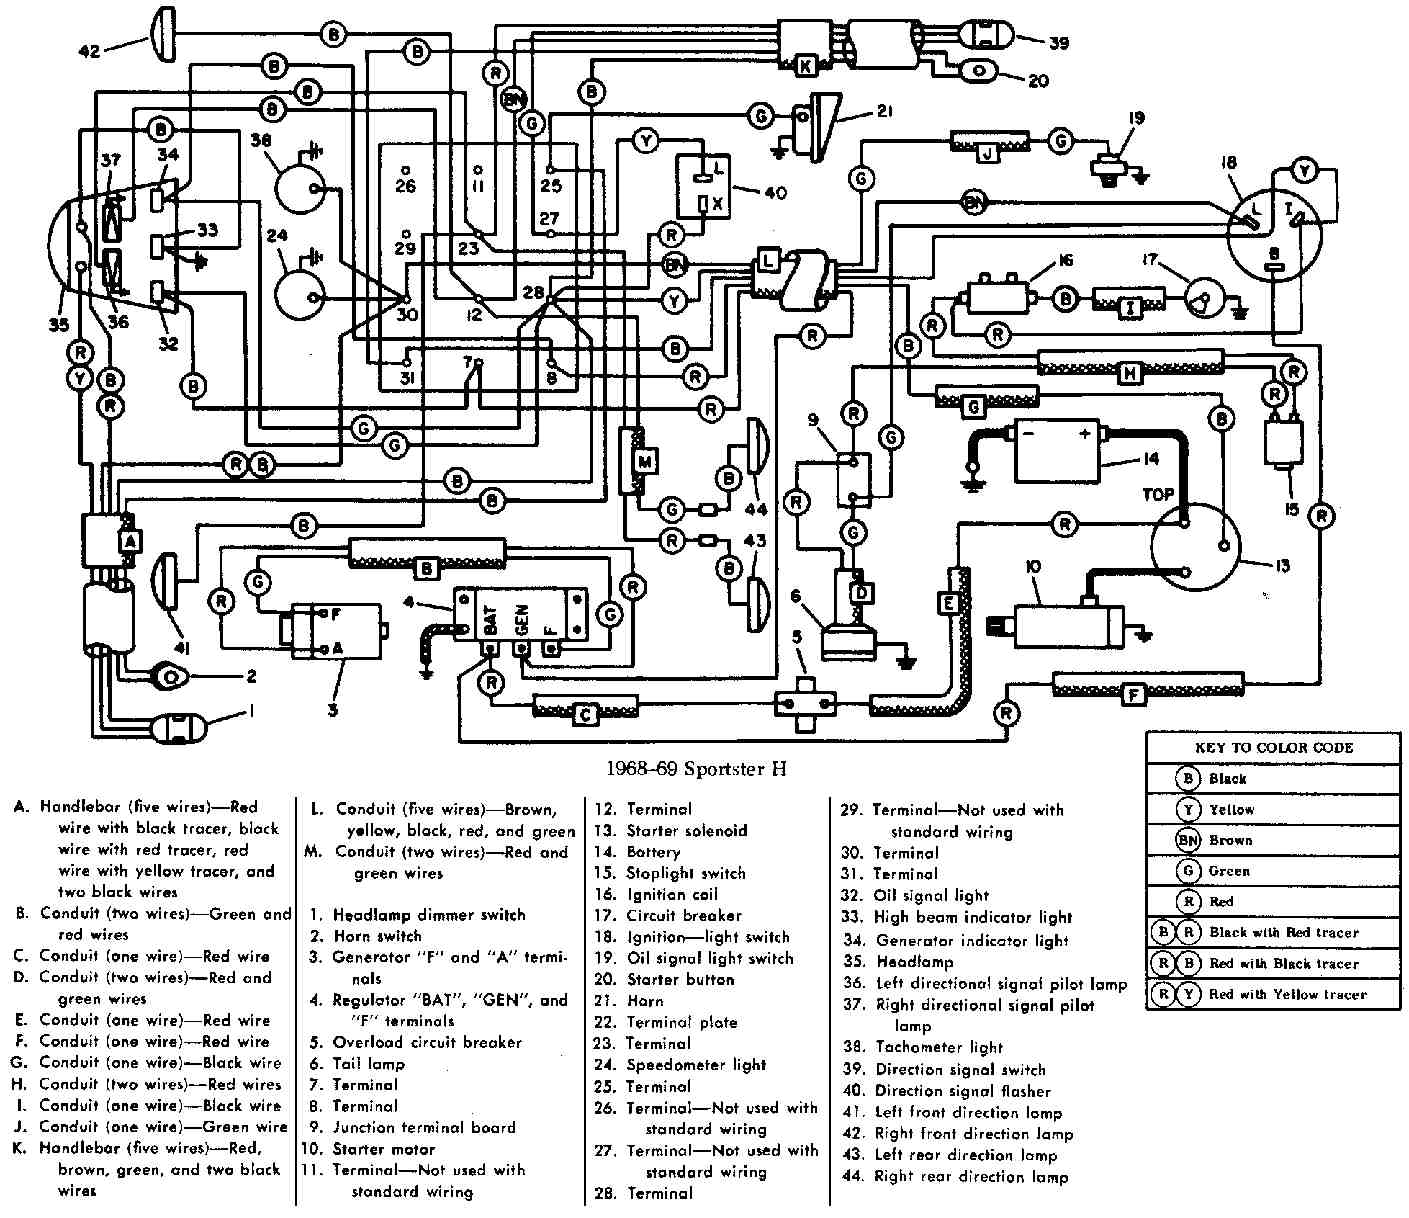 Colorful Luxaire Wiring Schematic Photo - Electrical Diagram Ideas ...